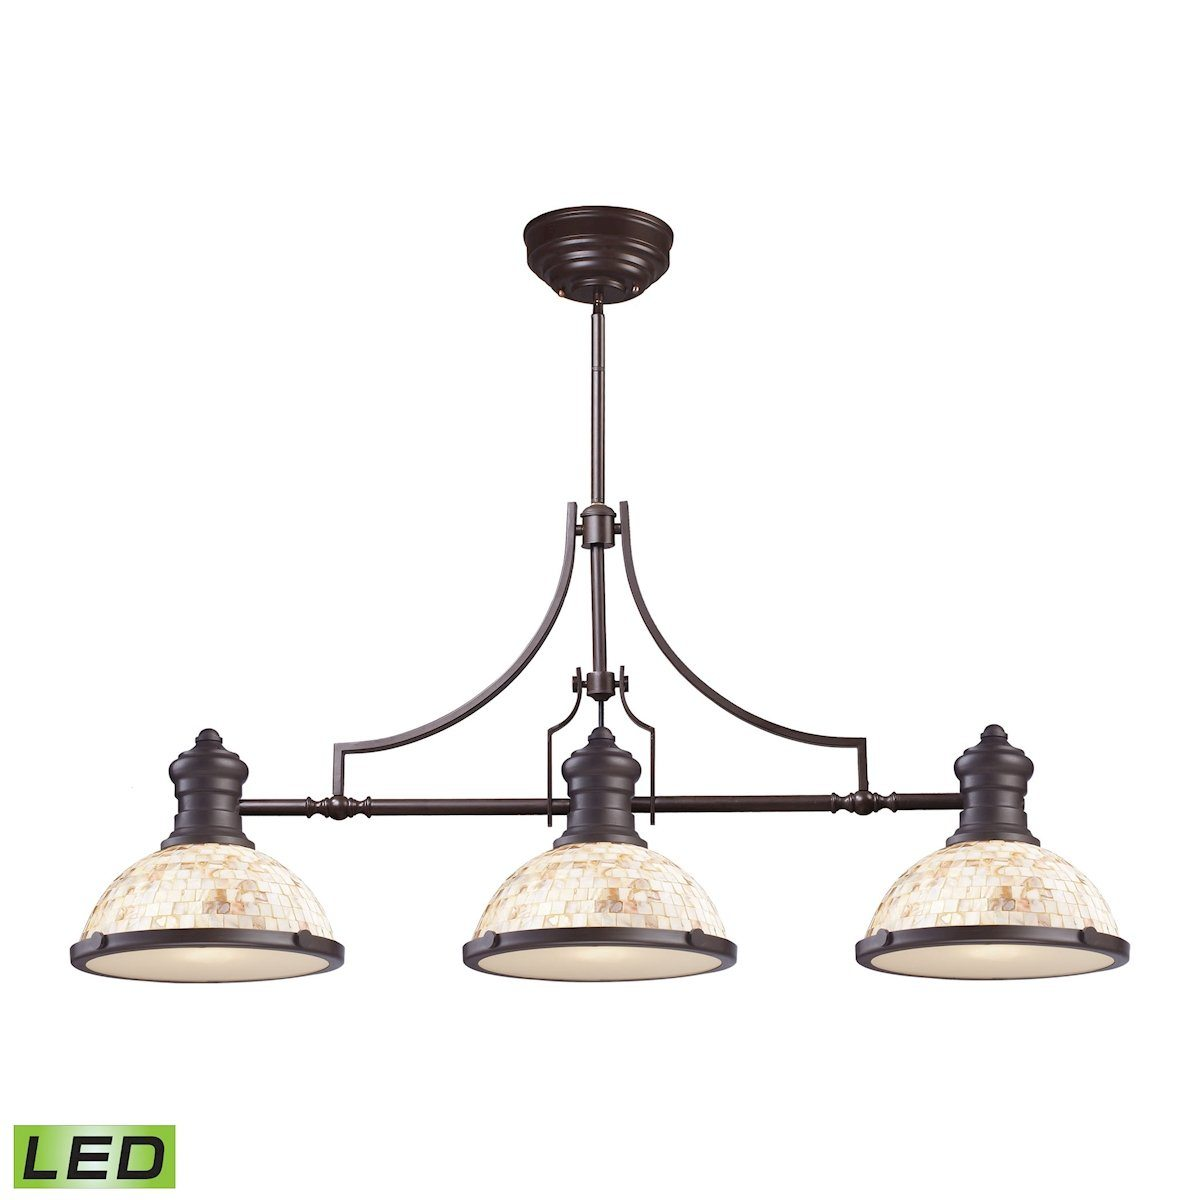 Chadwick 3 Light LED Billiard Light In Oiled Bronze And Cappa Shells Ceiling Elk Lighting